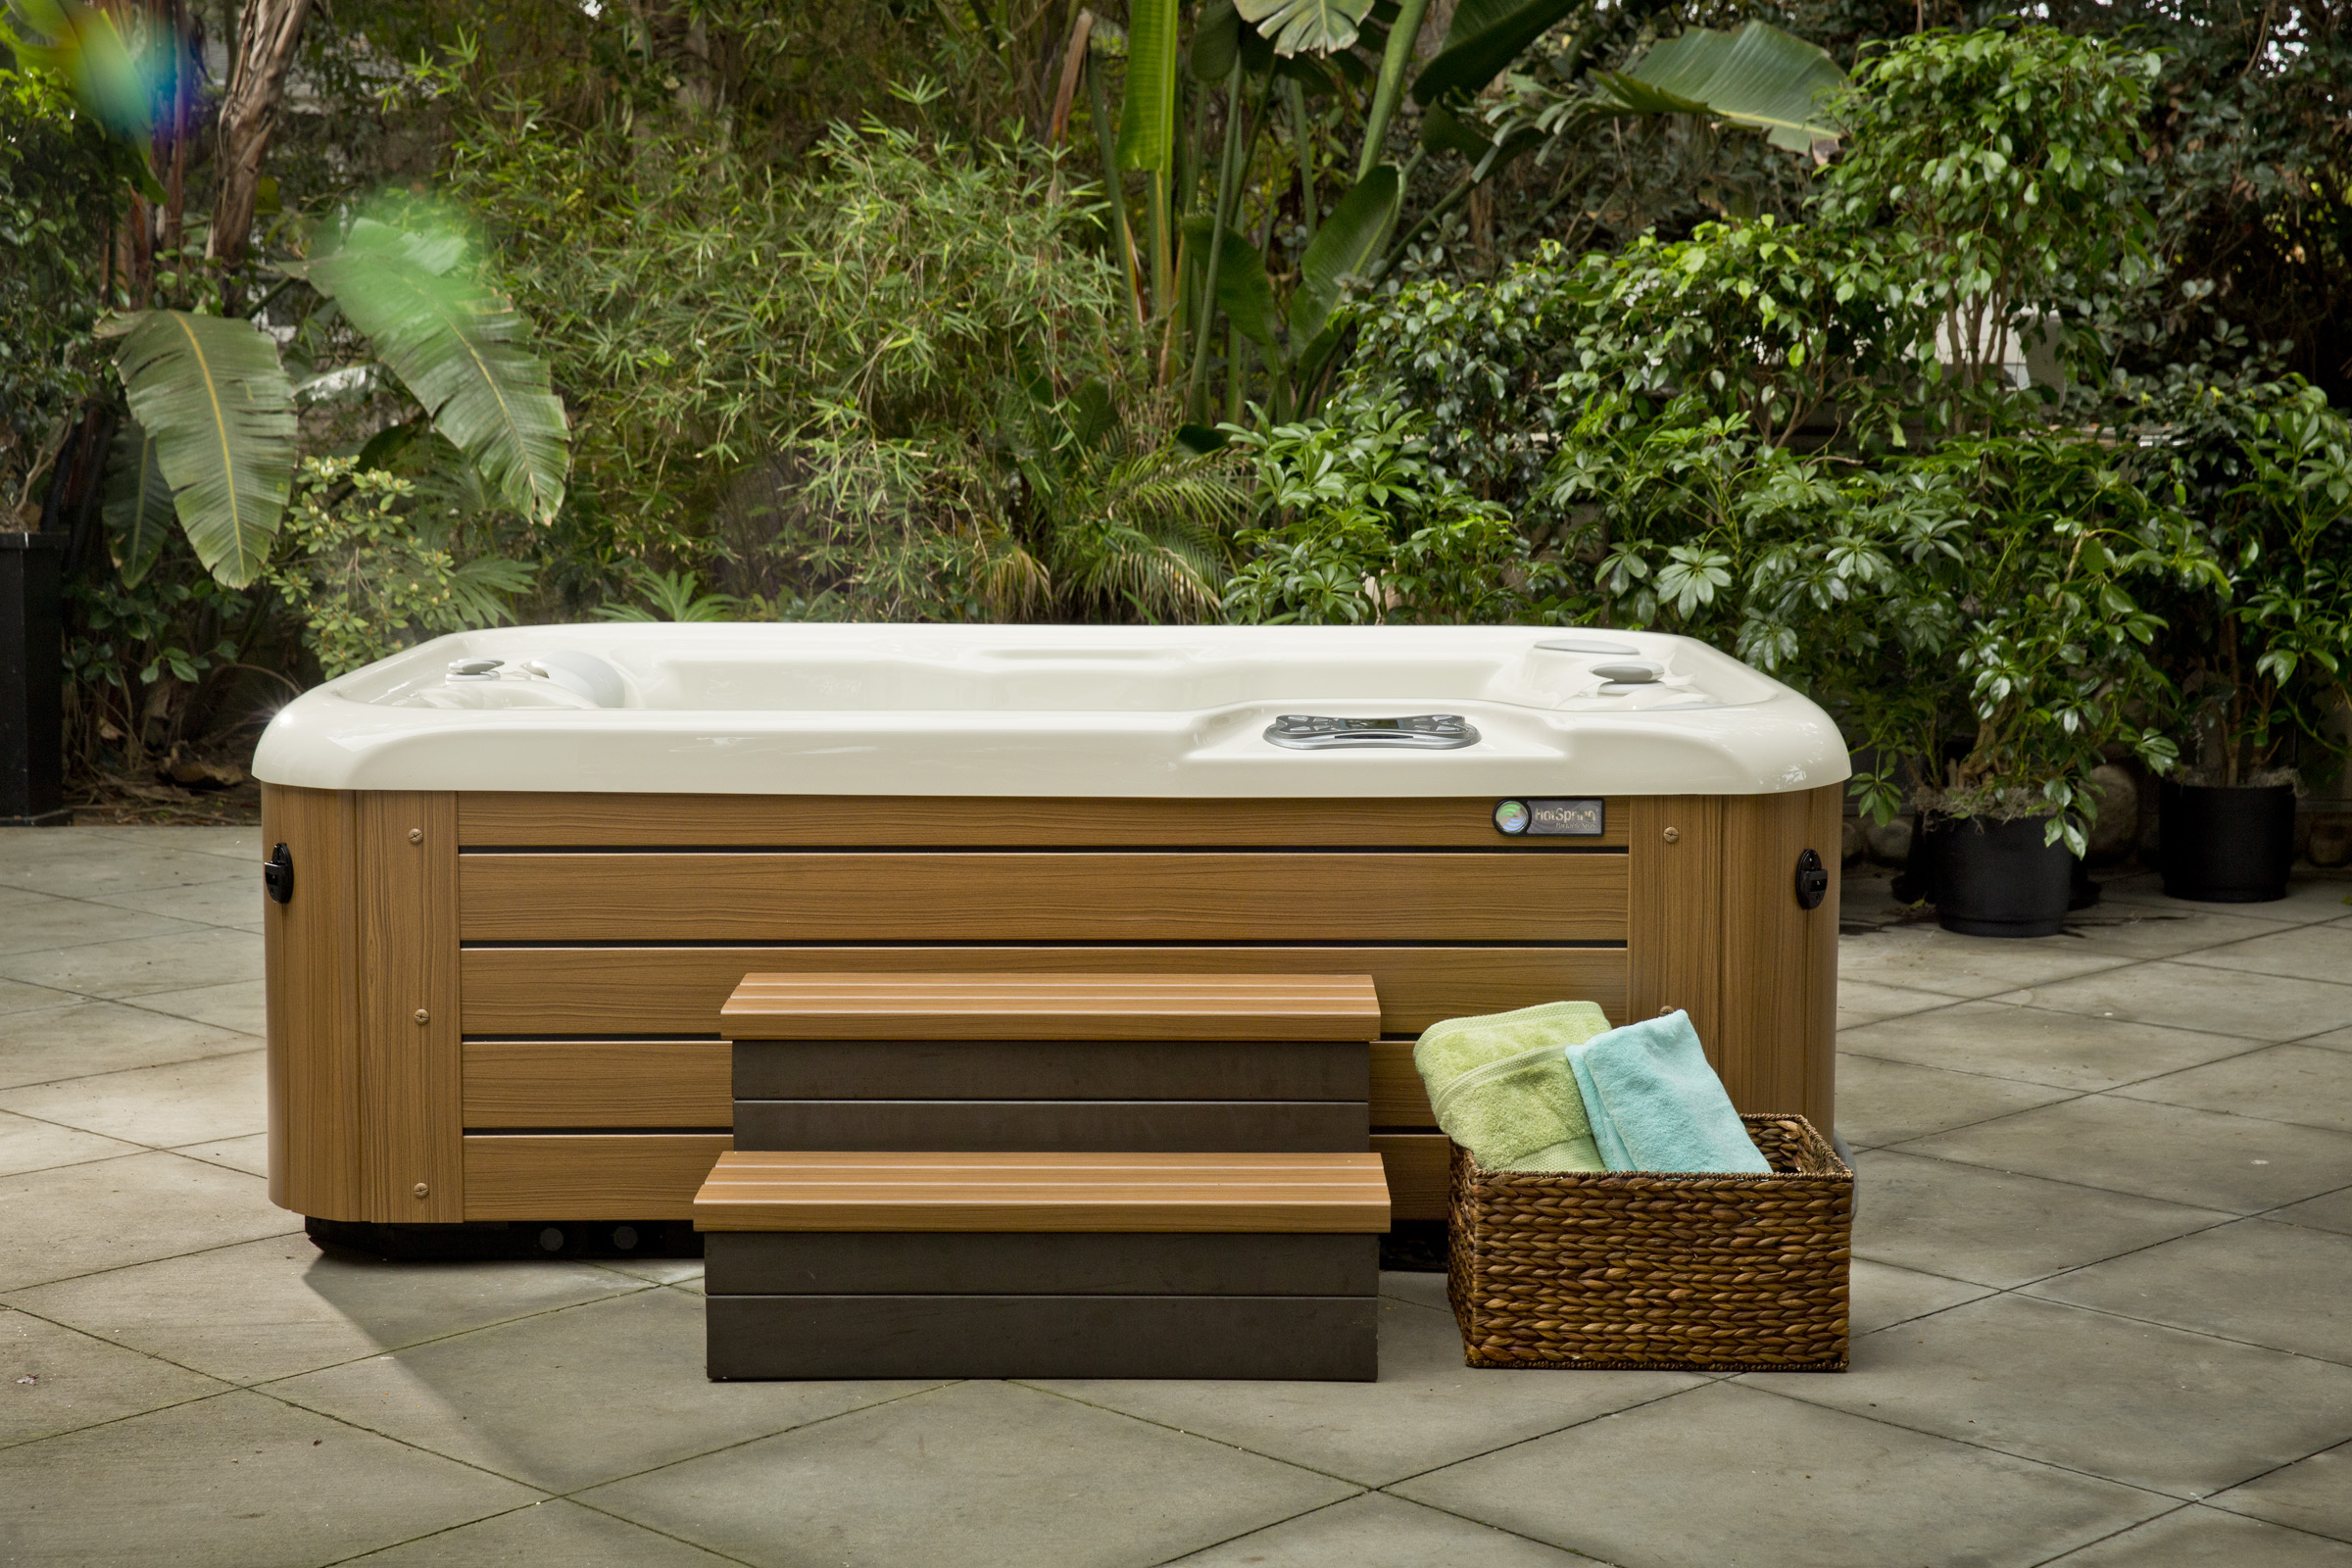 Hot Spring Highlife Jetsetter 3 Person Hot Tub - Gallery